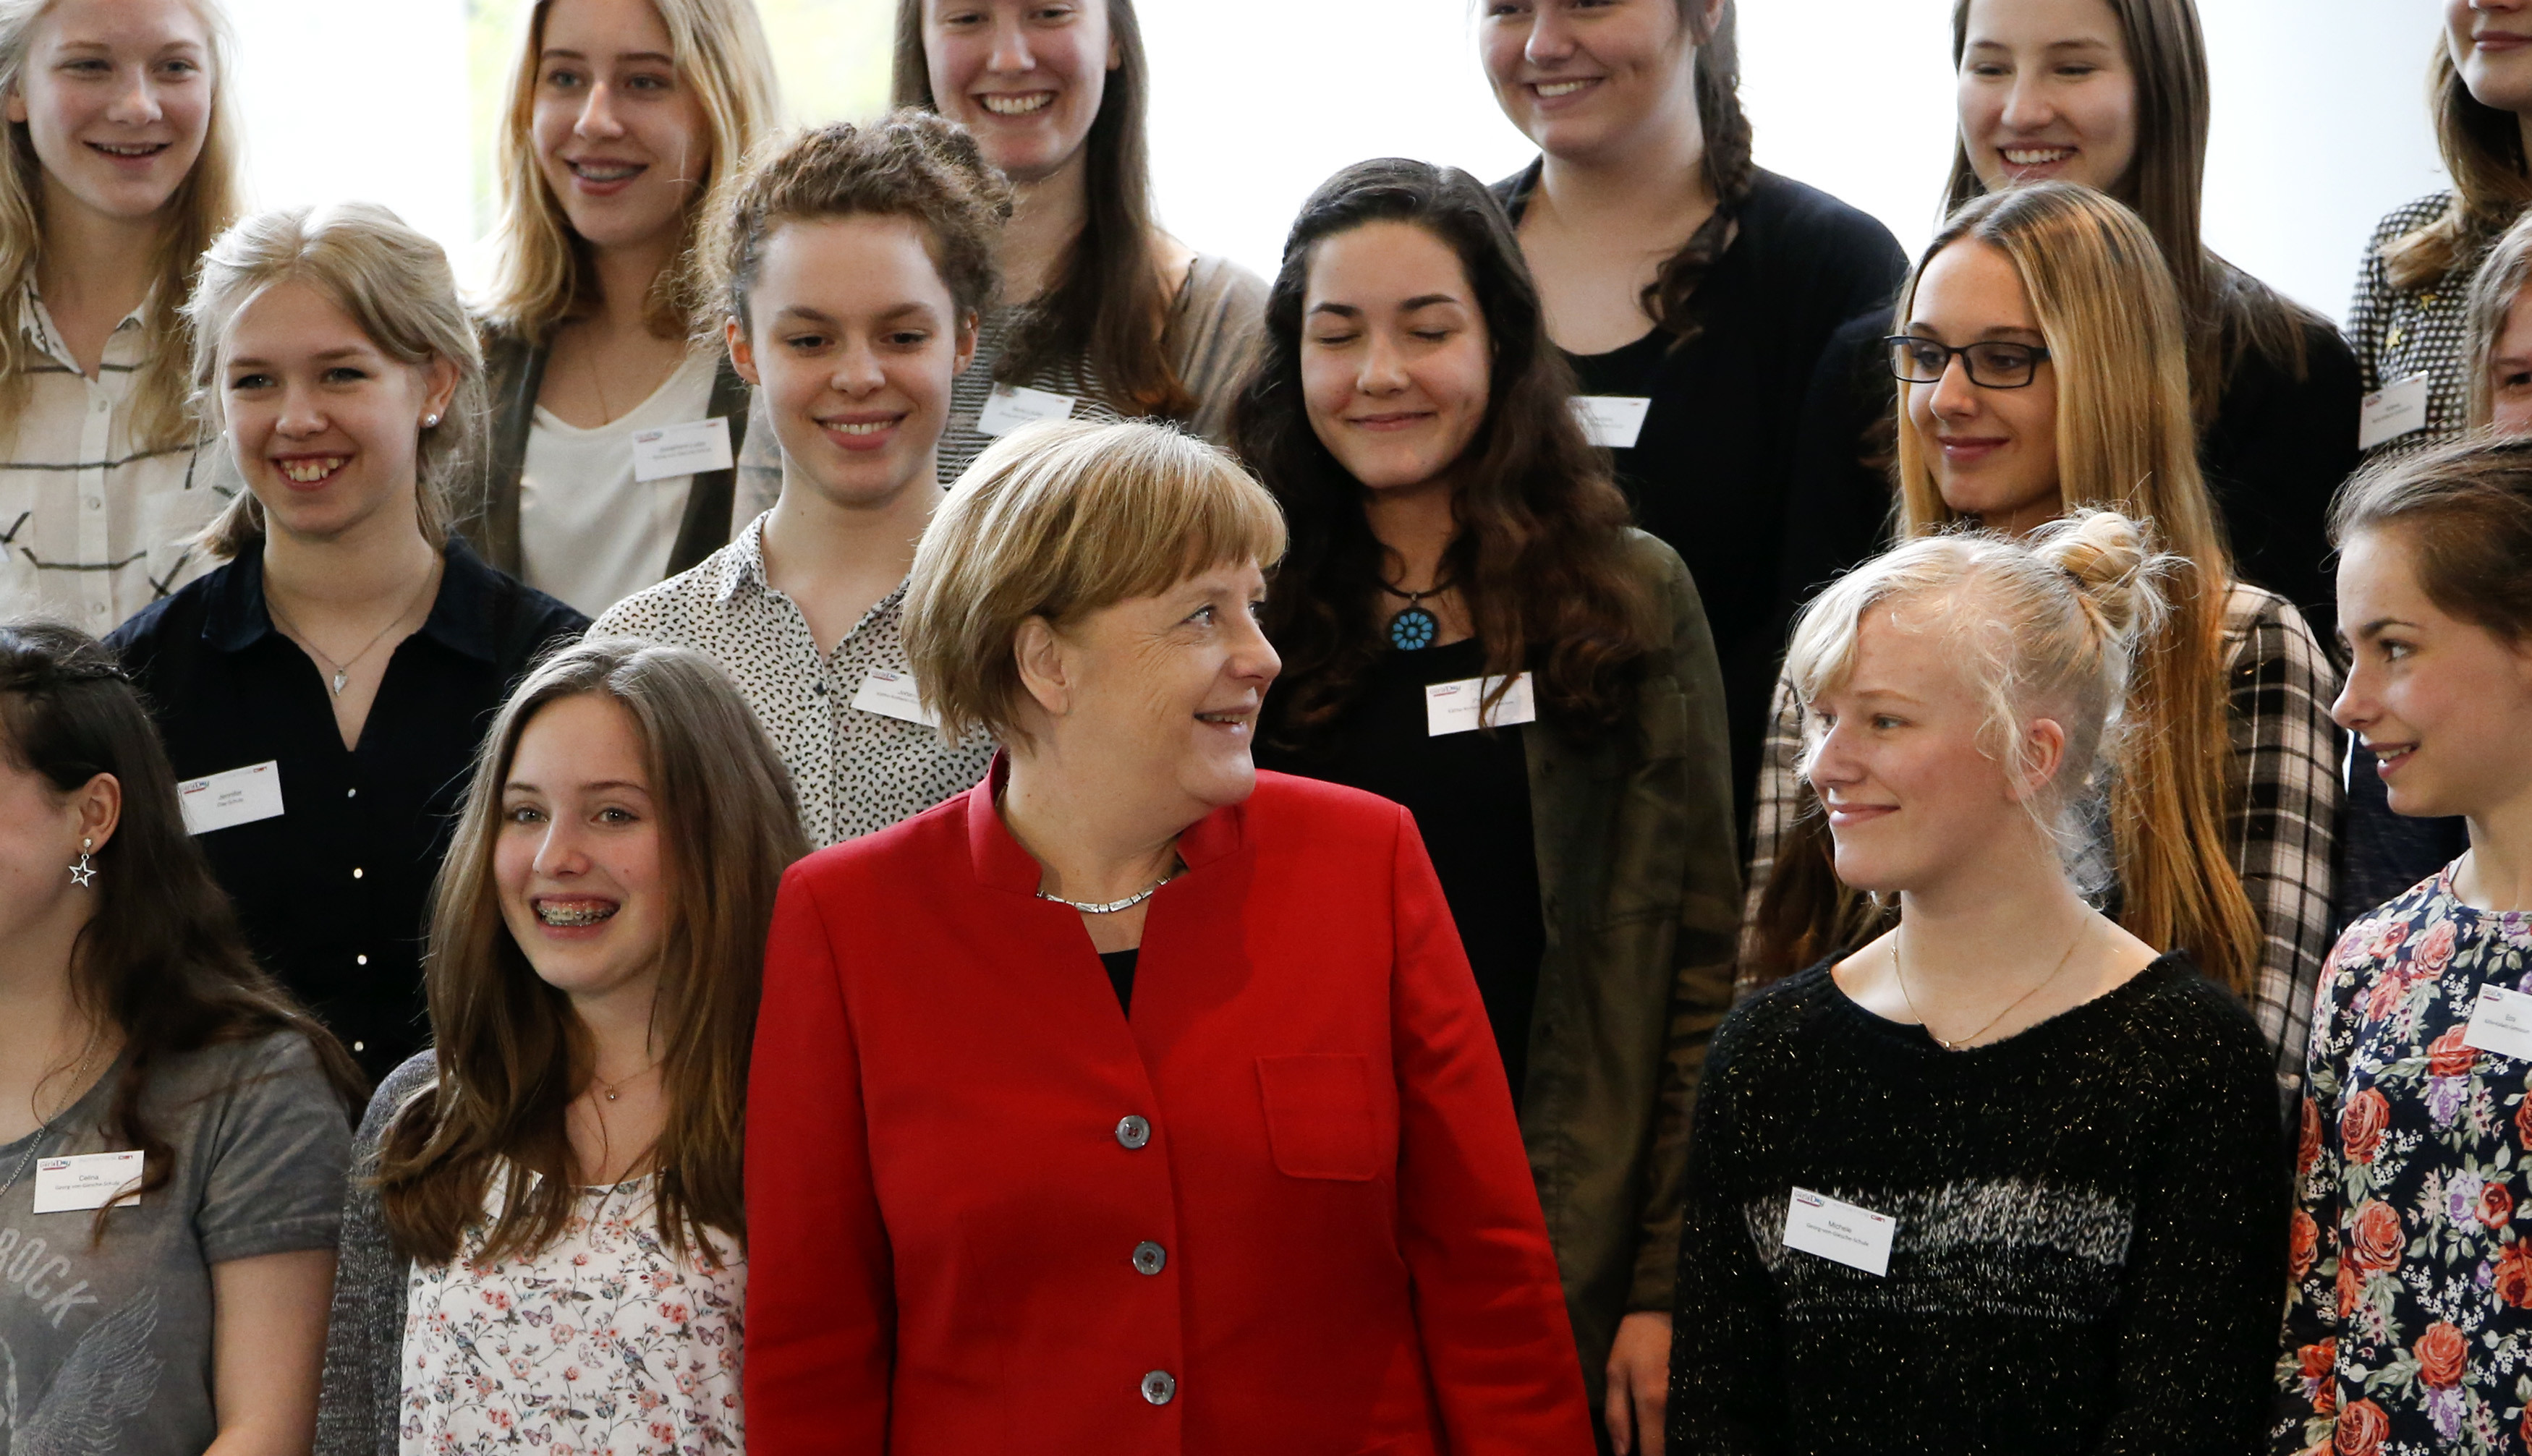 German Chancellor Angela Merkel poses with participants of a Girls Day career event at the Chancellery in Berlin April 27, 2016. Girls Day seeks to attract female pupils to careers in IT, technological and natural science sectors of the German industry.    REUTERS/Fabrizio Bensch - LR1EC4R0WO0RP